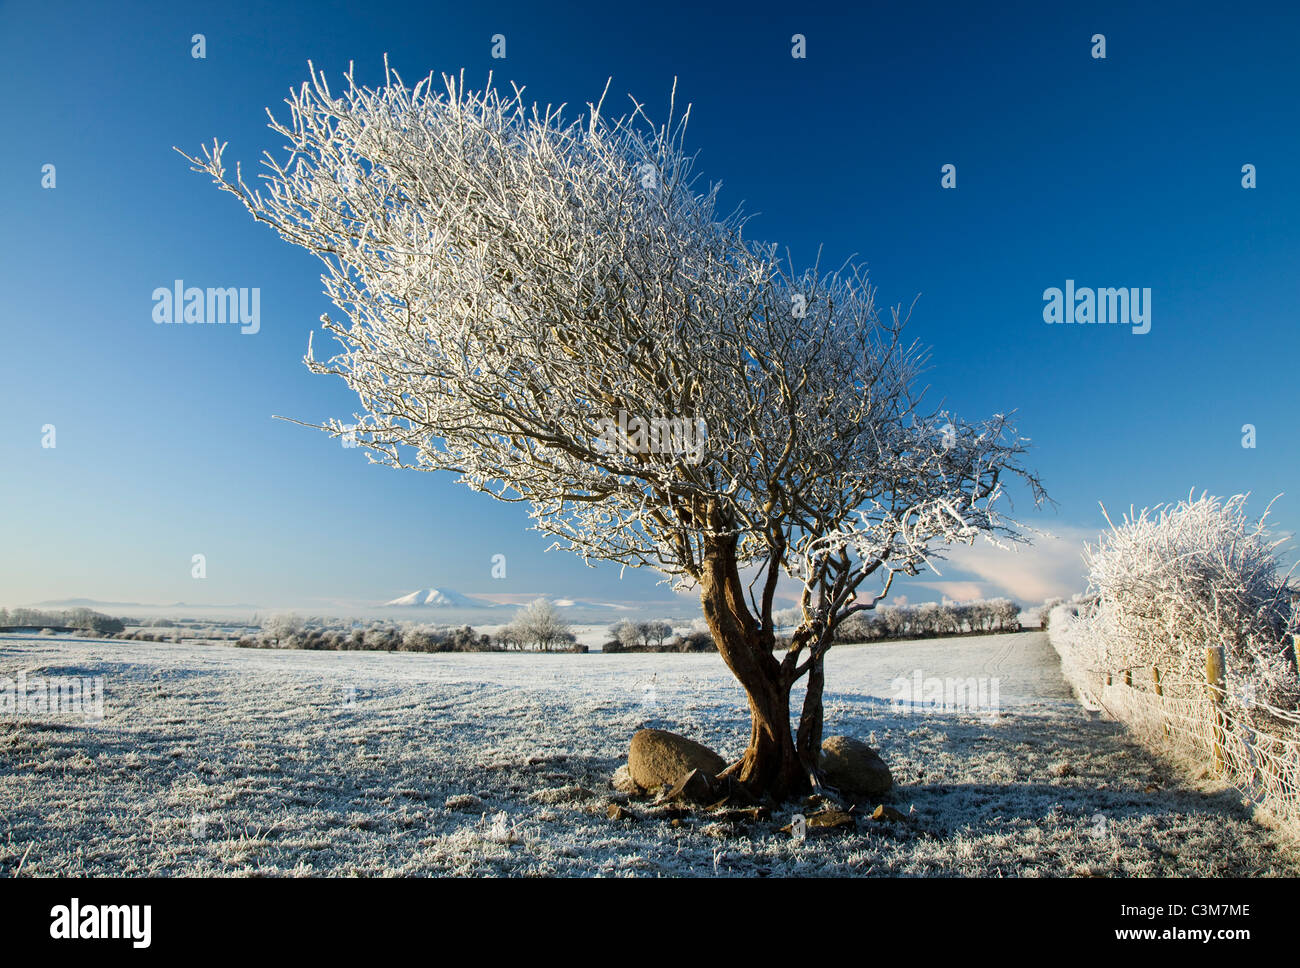 Hawthorn tree covered by winter hoar frost, County Sligo, Ireland. - Stock Image